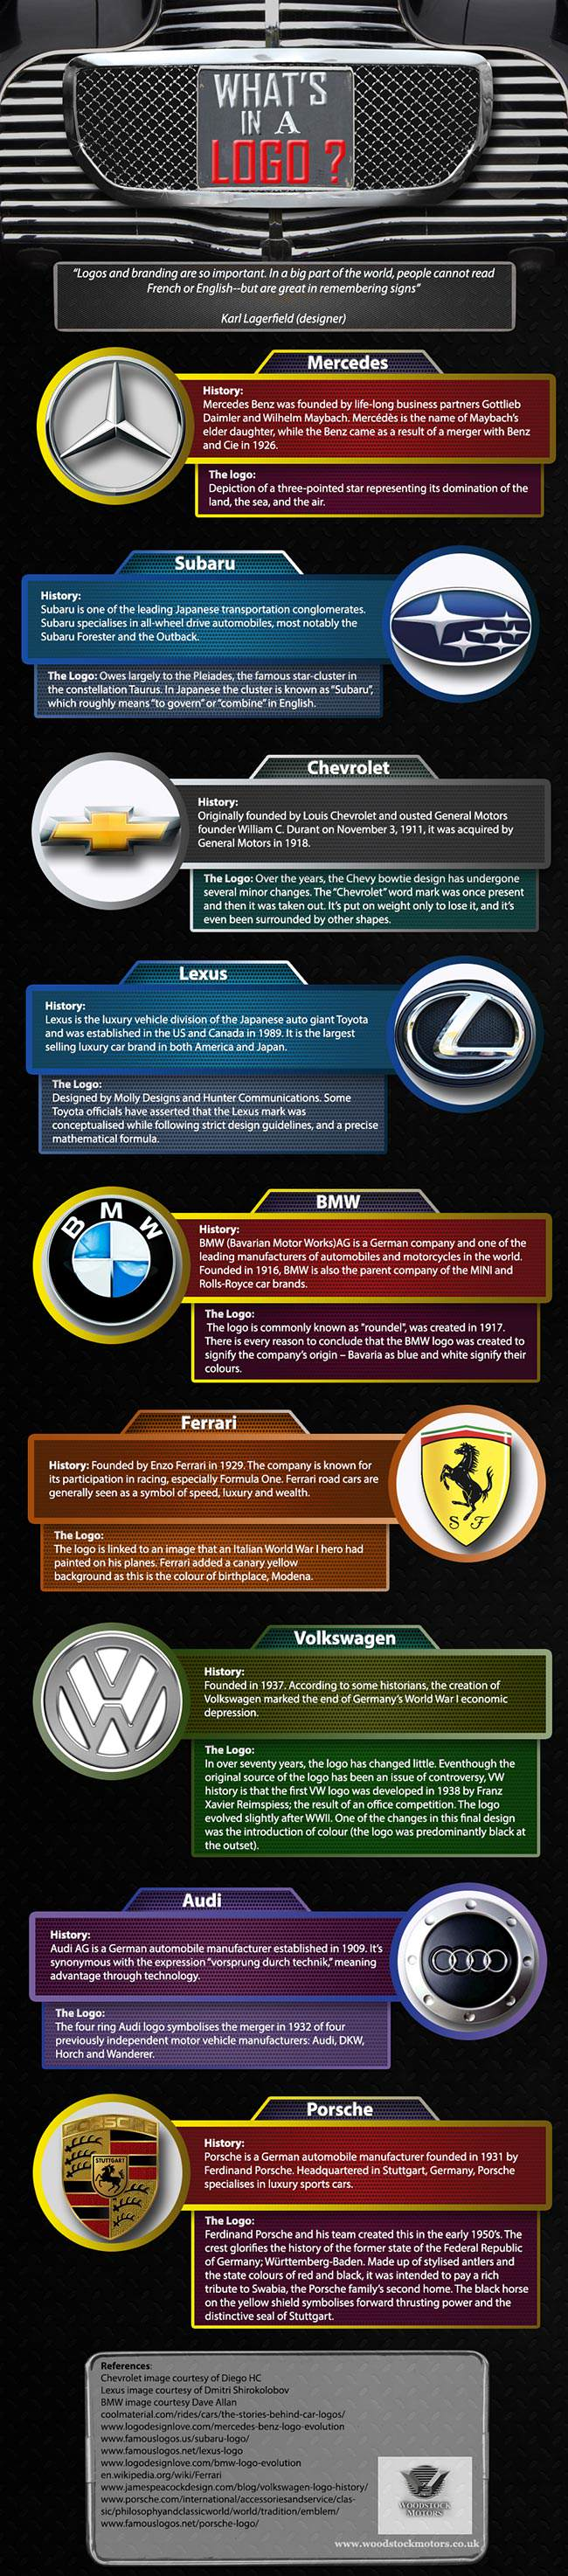 Whats-in-a-logo-Infographic-650px